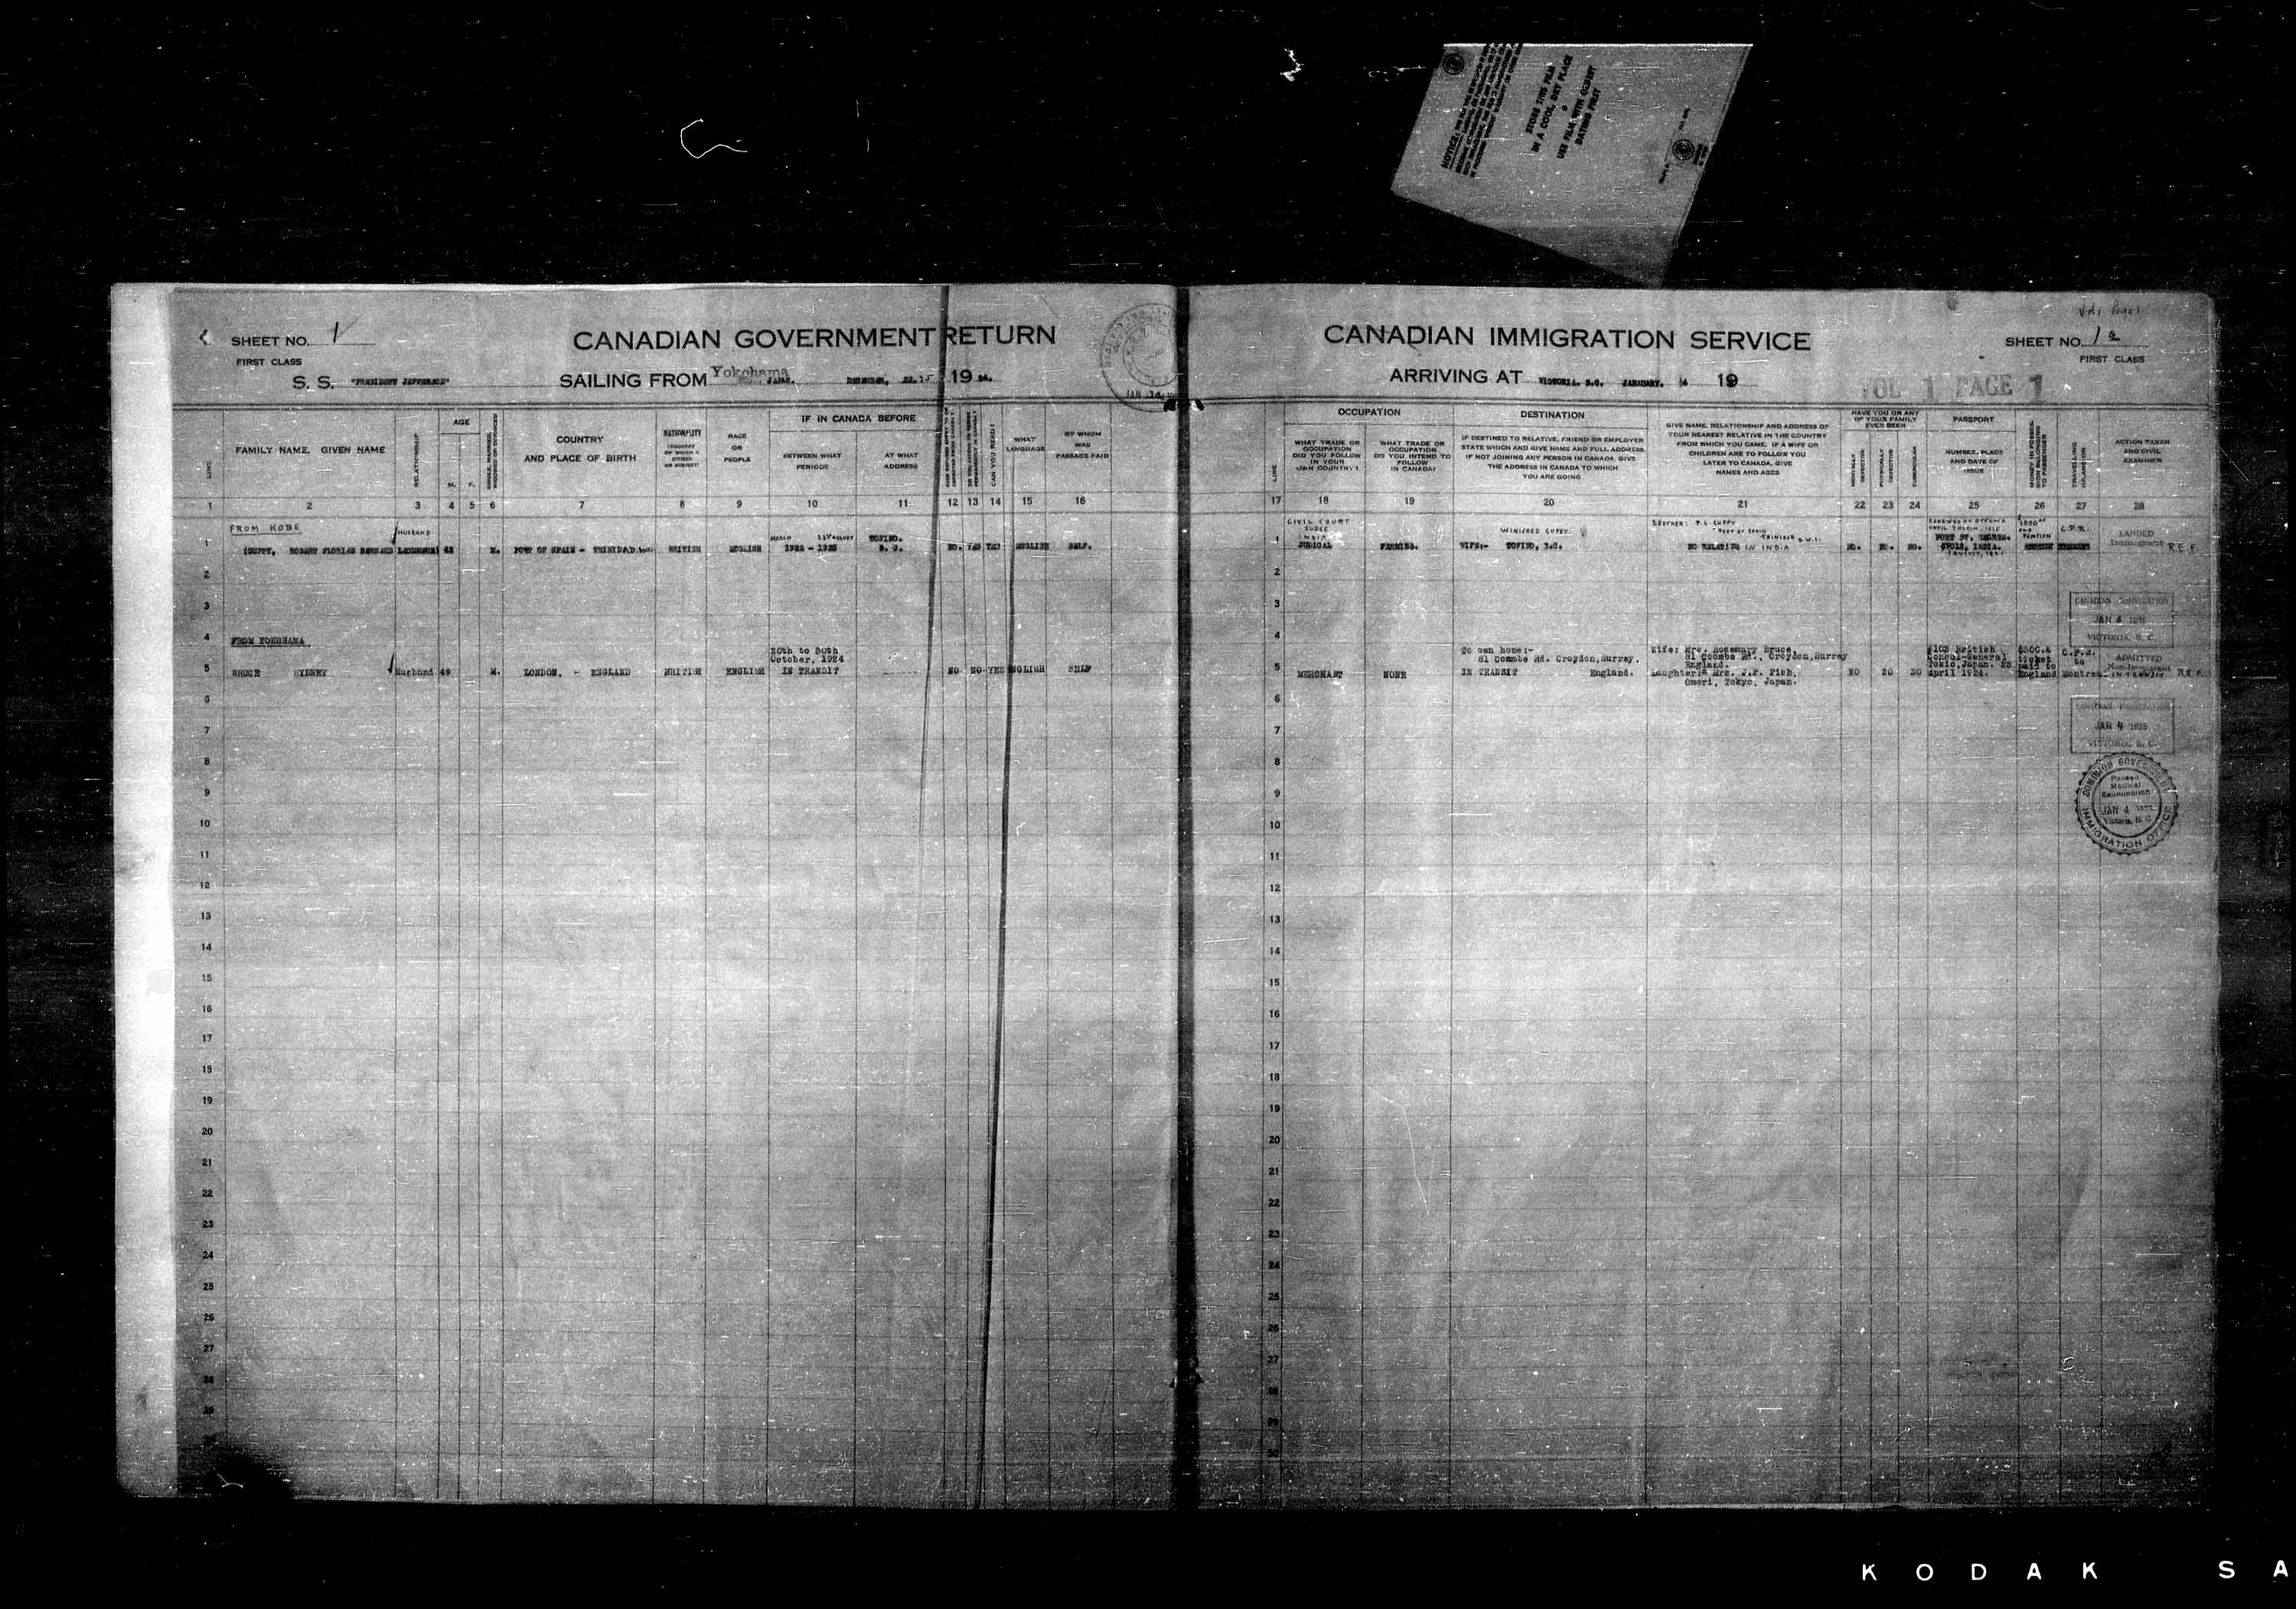 Title: Passenger Lists: Vancouver and Victoria (1925-1935) - Mikan Number: 161347 - Microform: t-14881